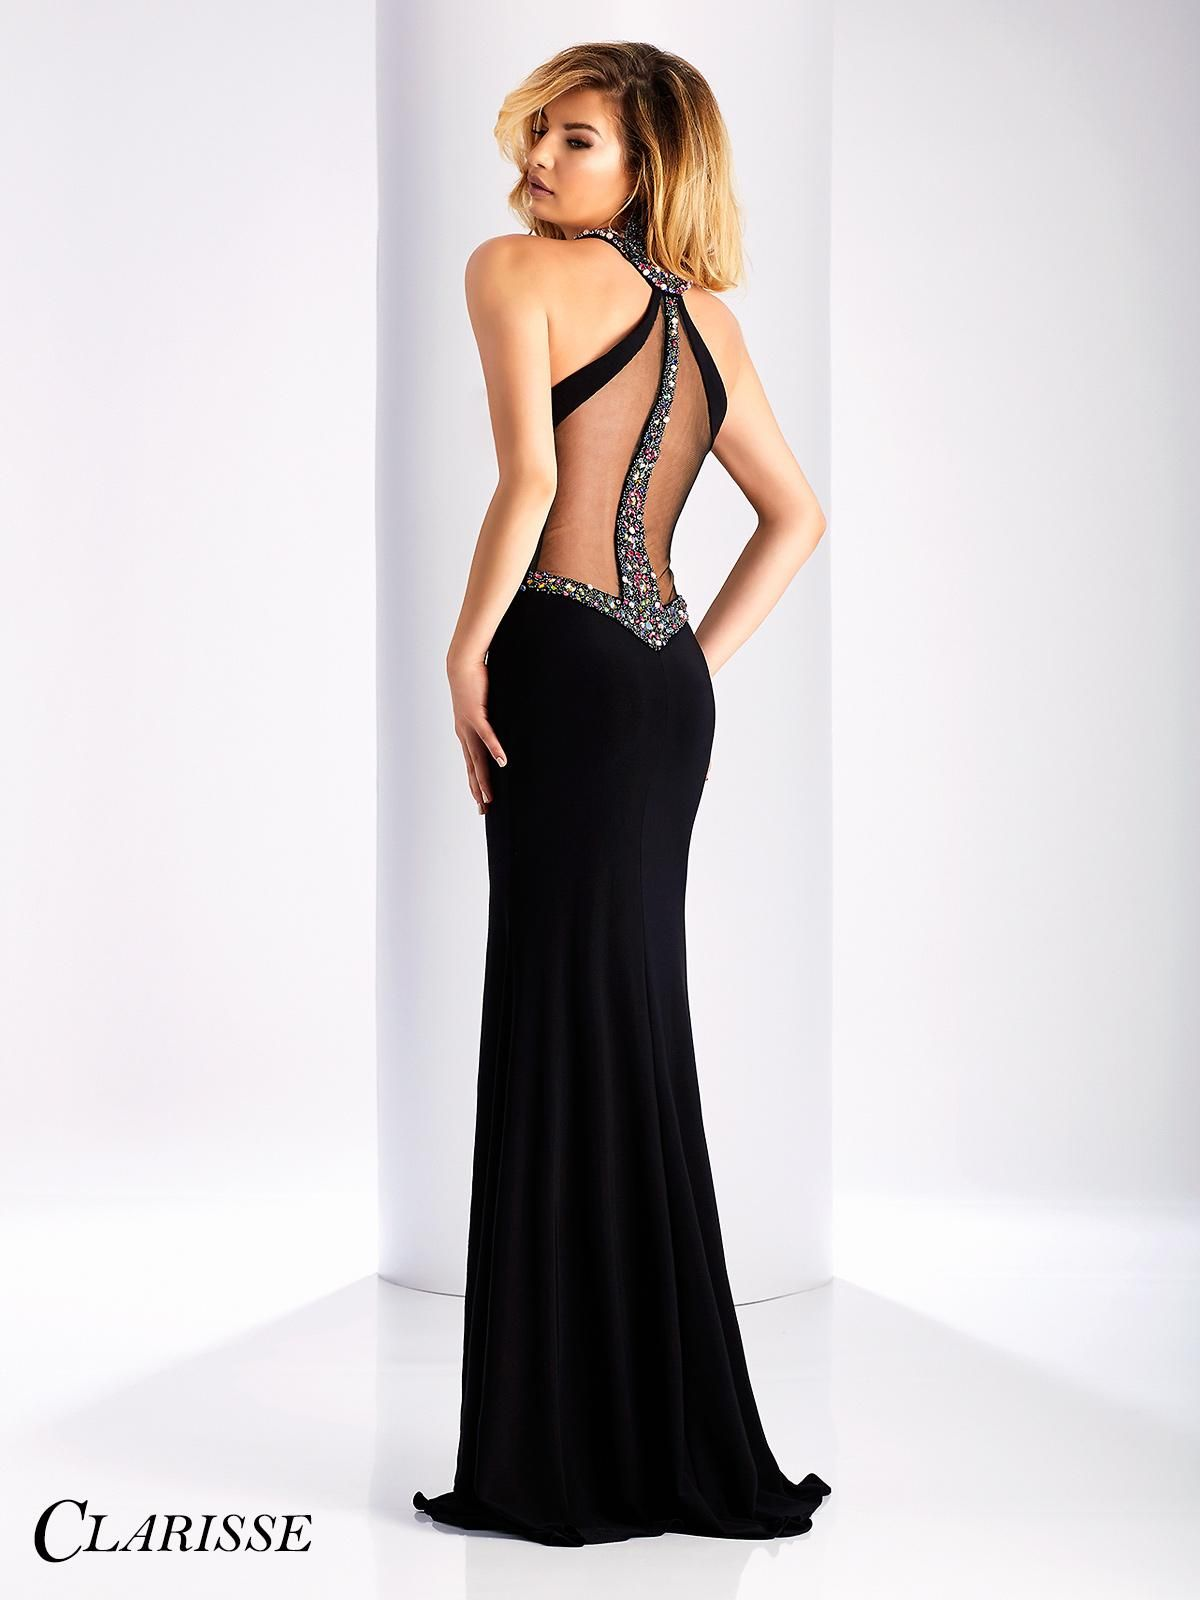 Fitted sexy clarisse prom dress style look simple and stunning